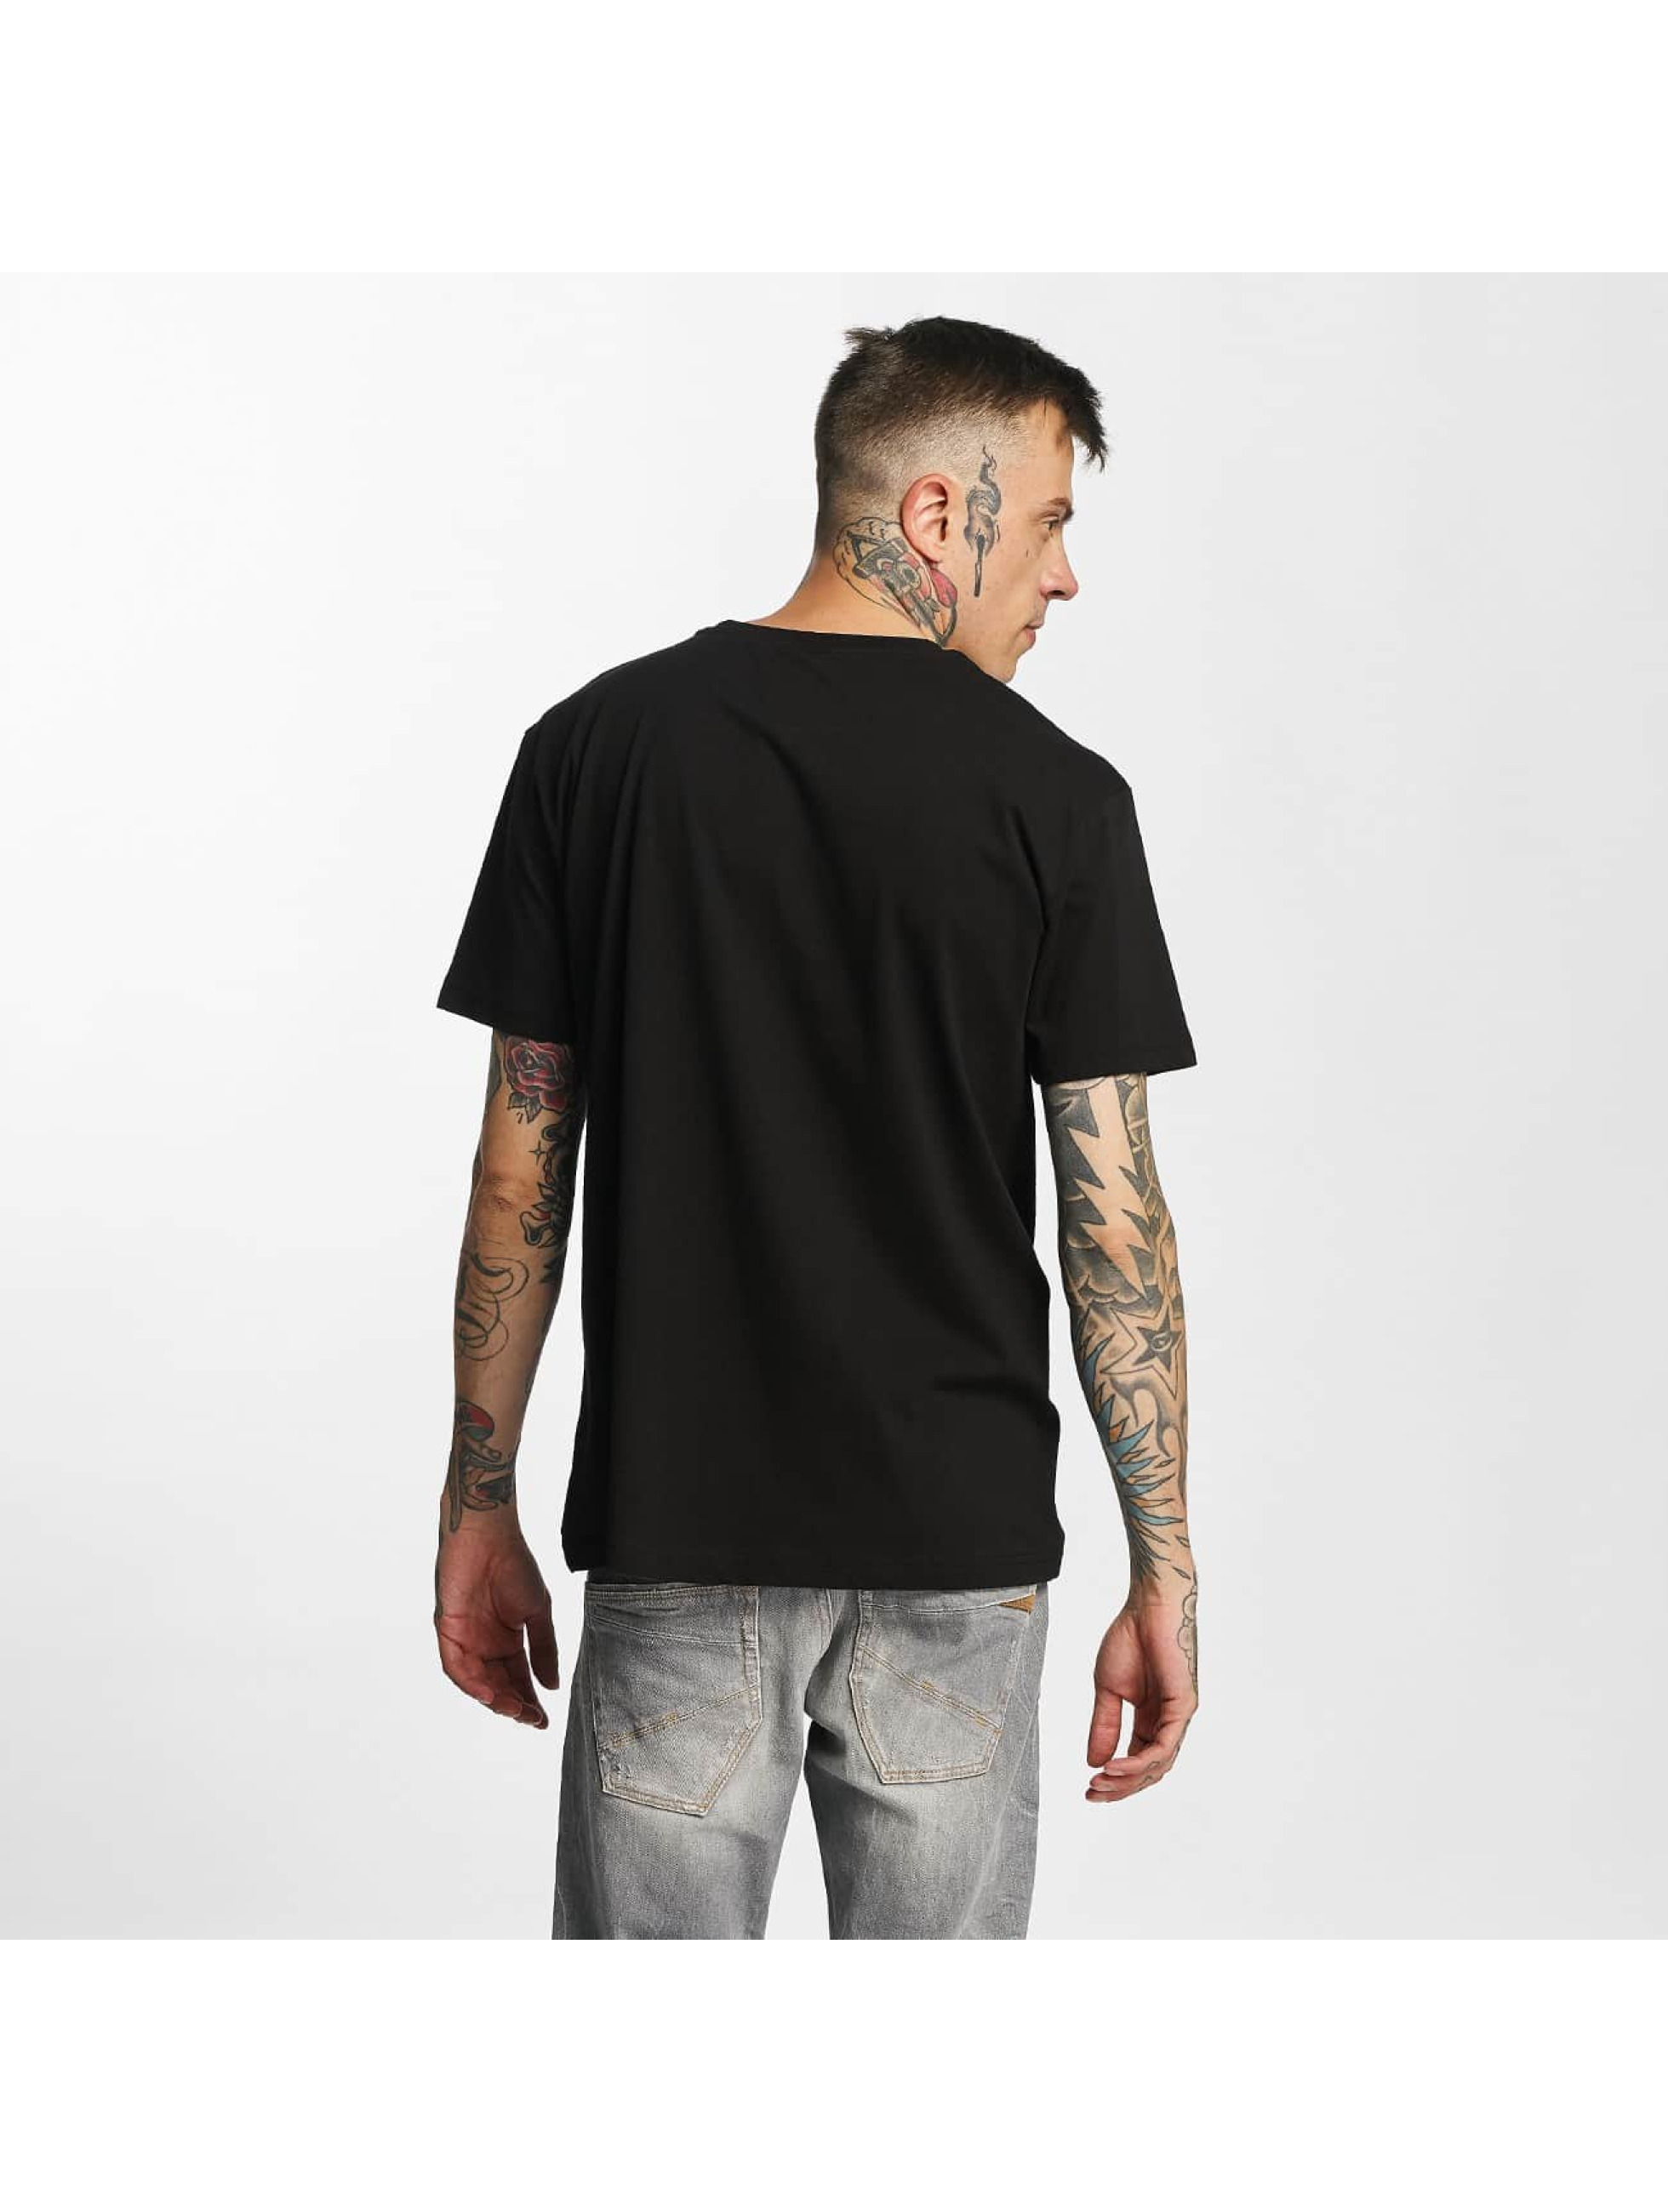 Amplified T-Shirt Tupac - In The Shadows black